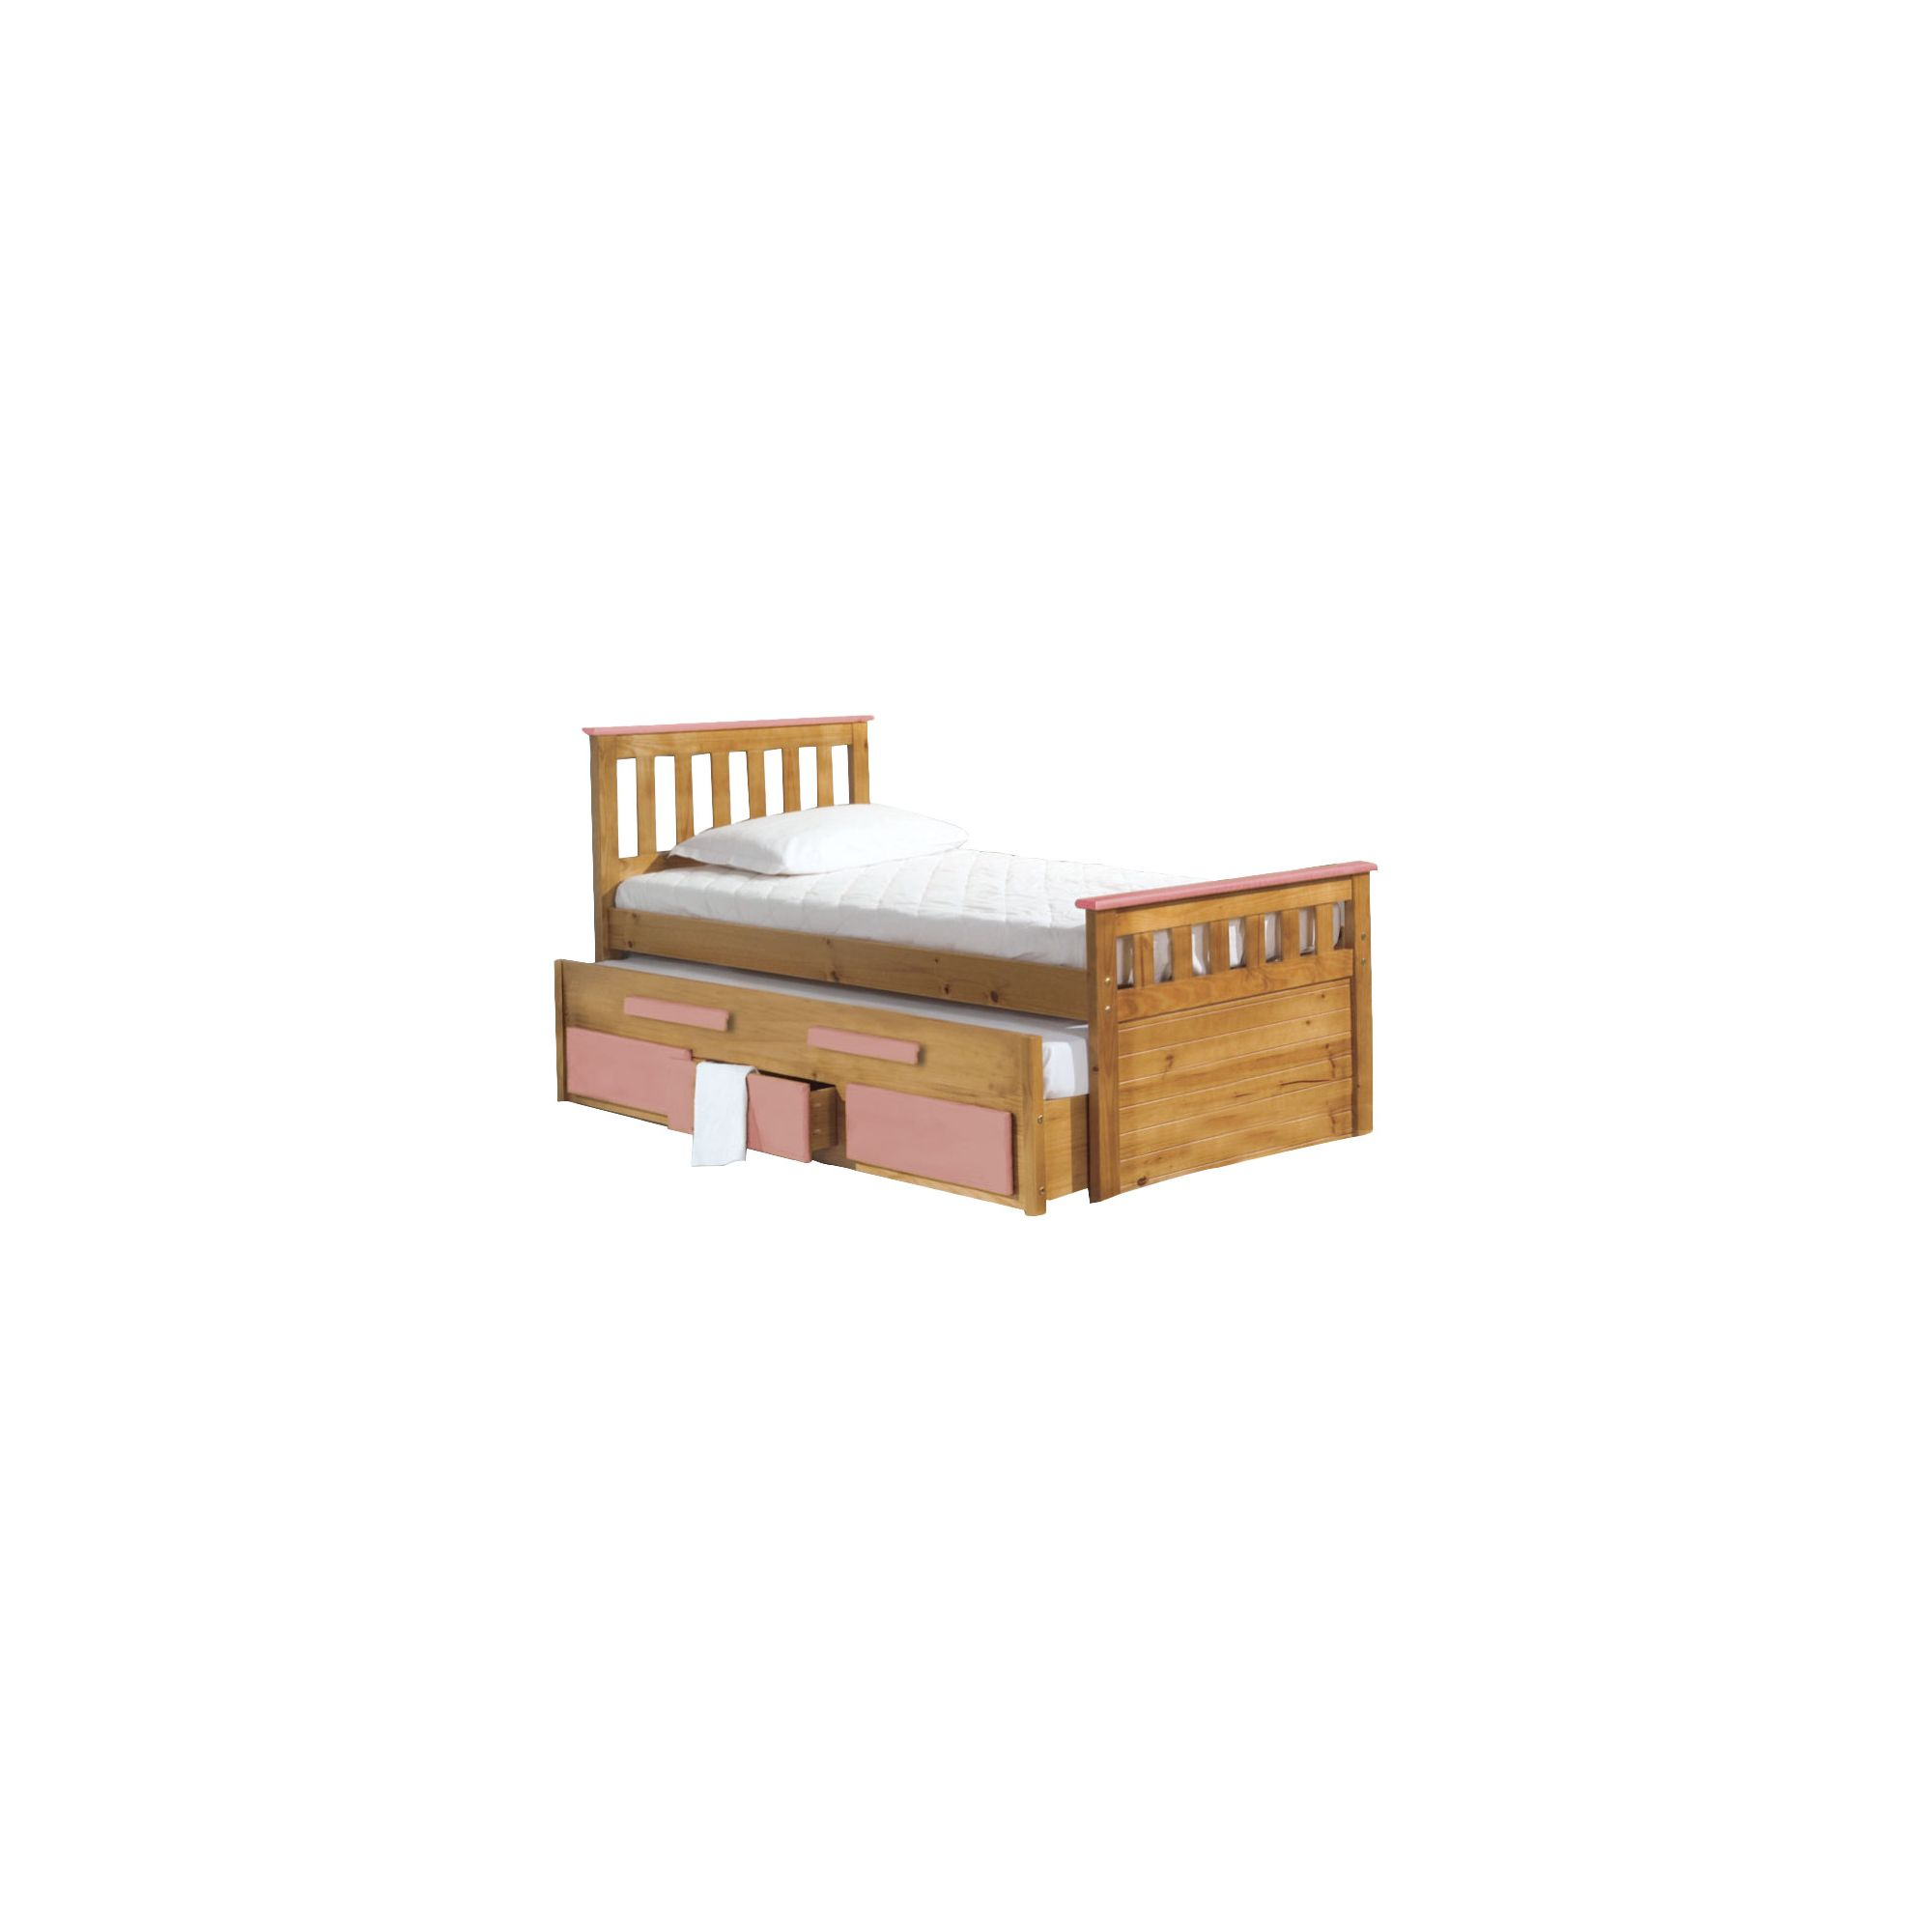 Verona Bergamo Captains Bed with Guest Bed - Antique Pink drawers at Tesco Direct